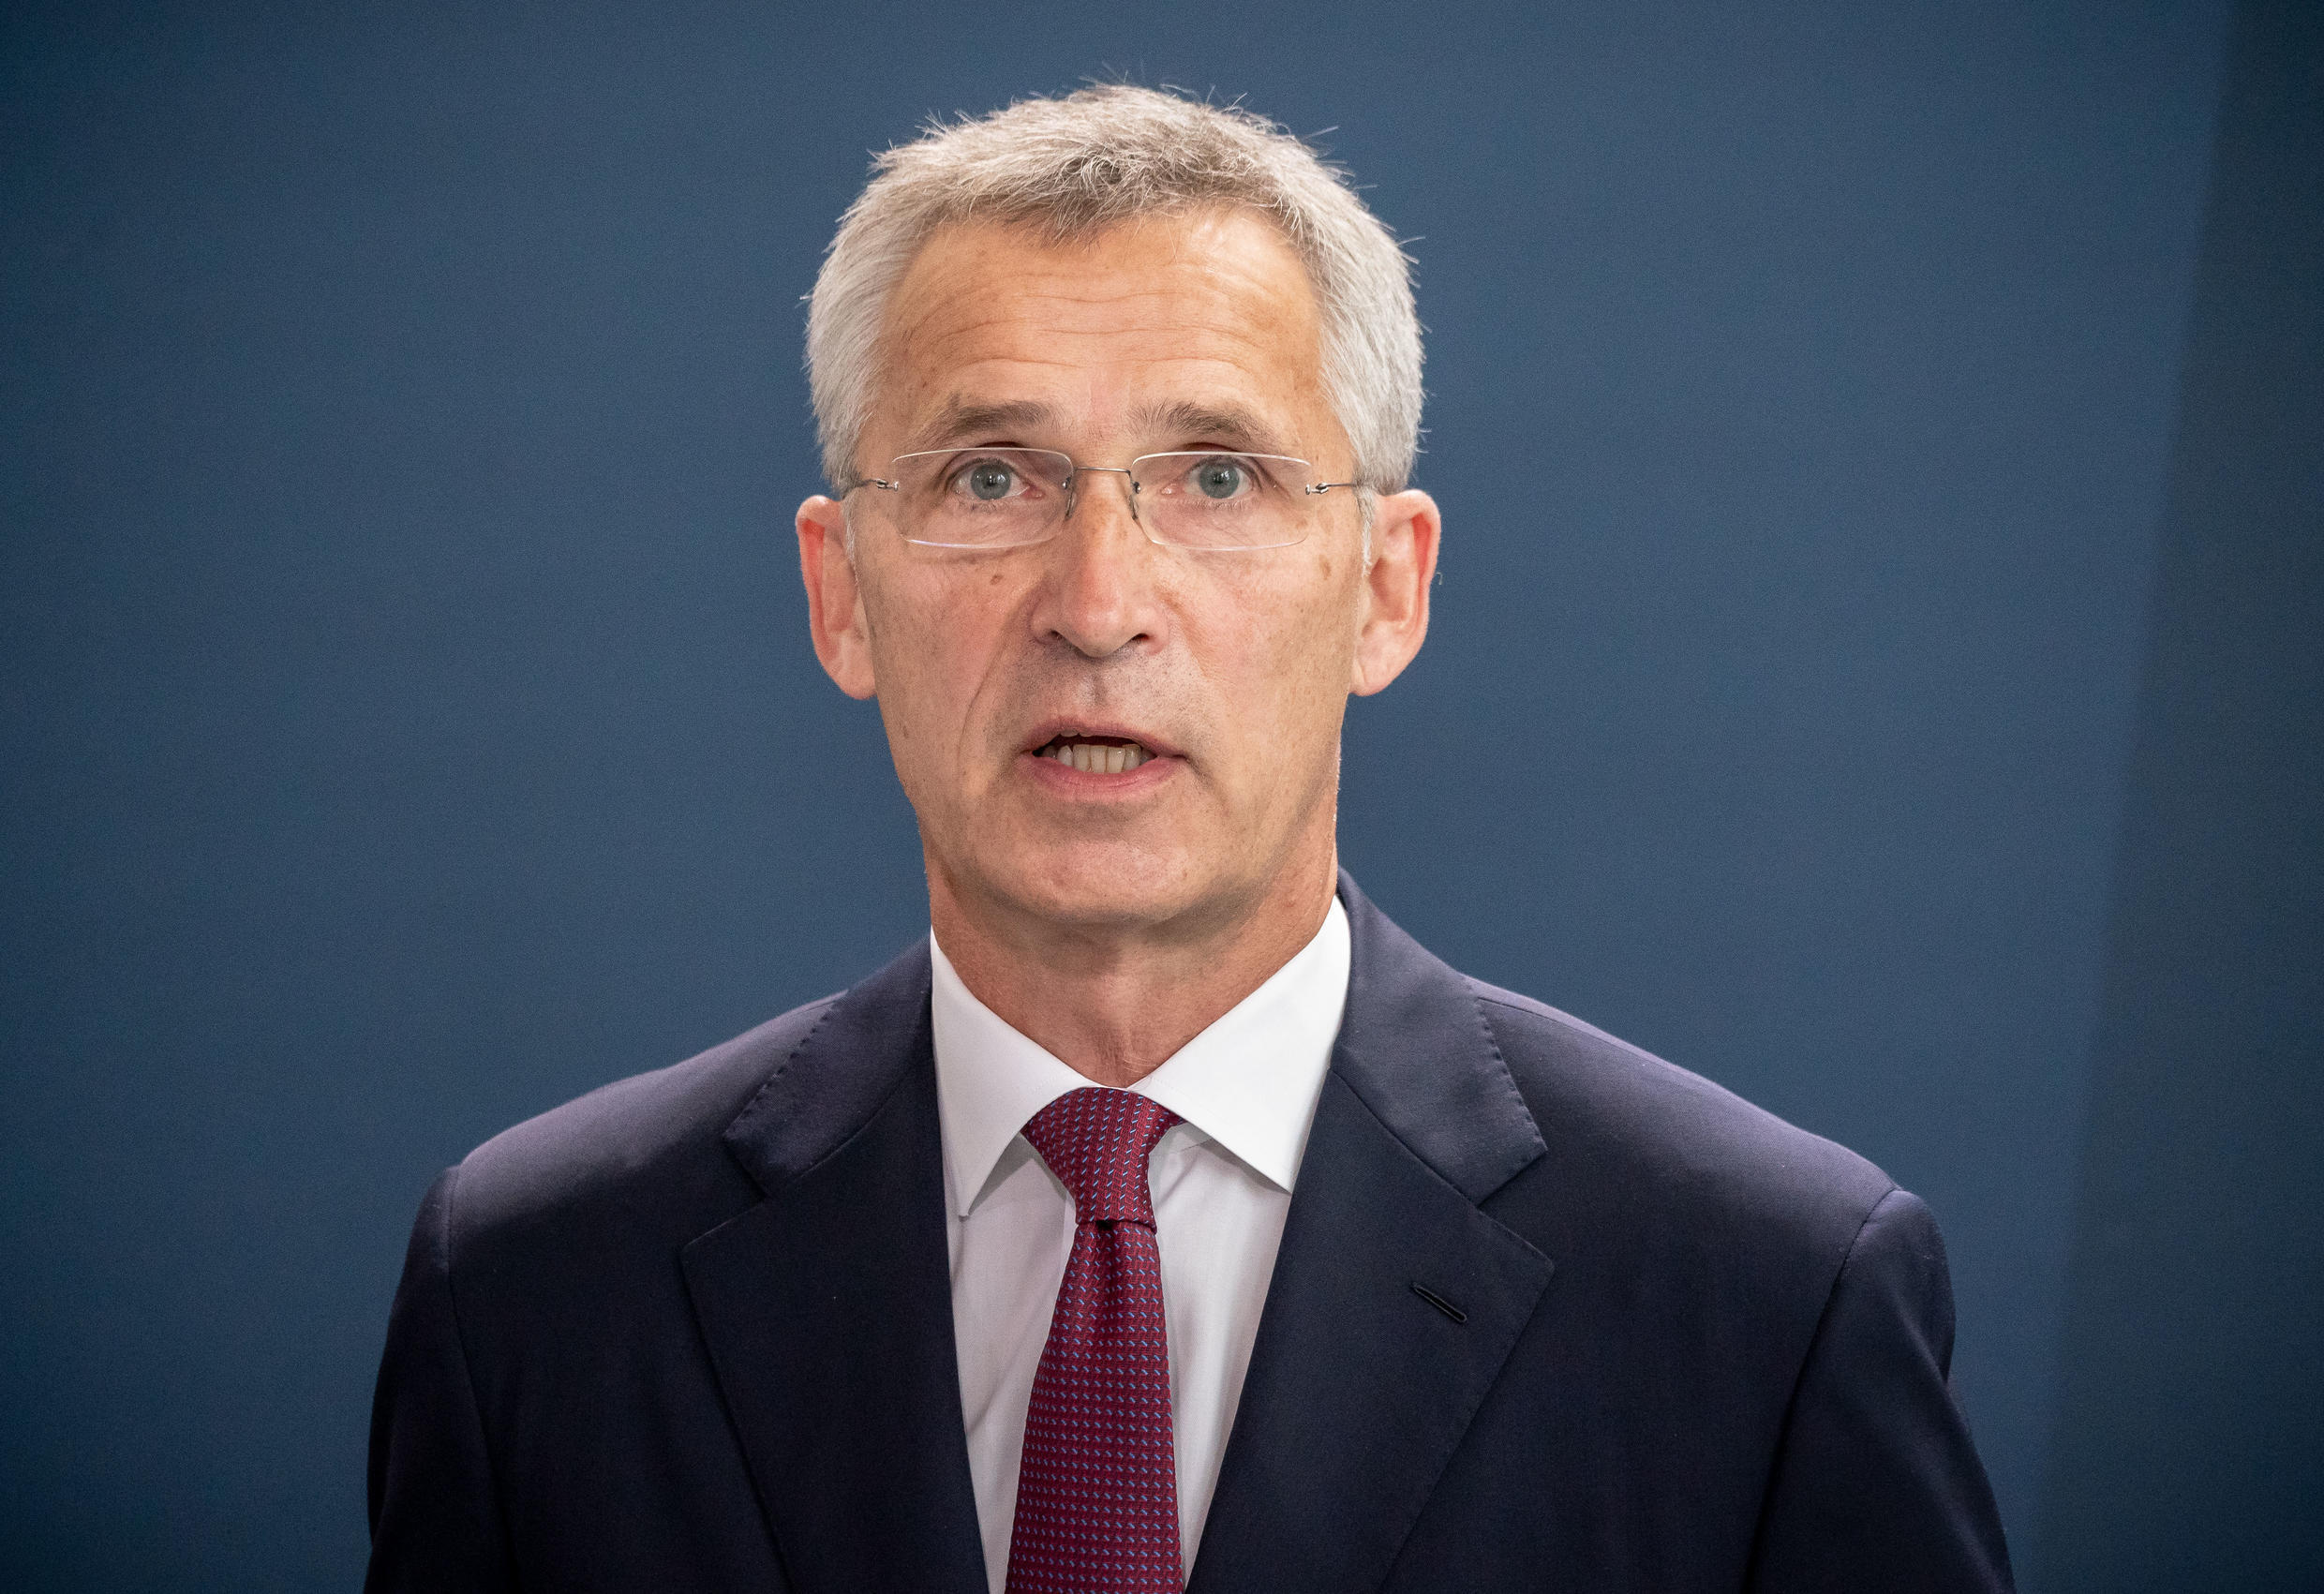 NATO Secretary General Jens Stoltenberg (pictured in August 2020) called on Russia to cooperate in an international investigation into Russian opposition leader Navalny's poisoning on Sept. 4, 2020.